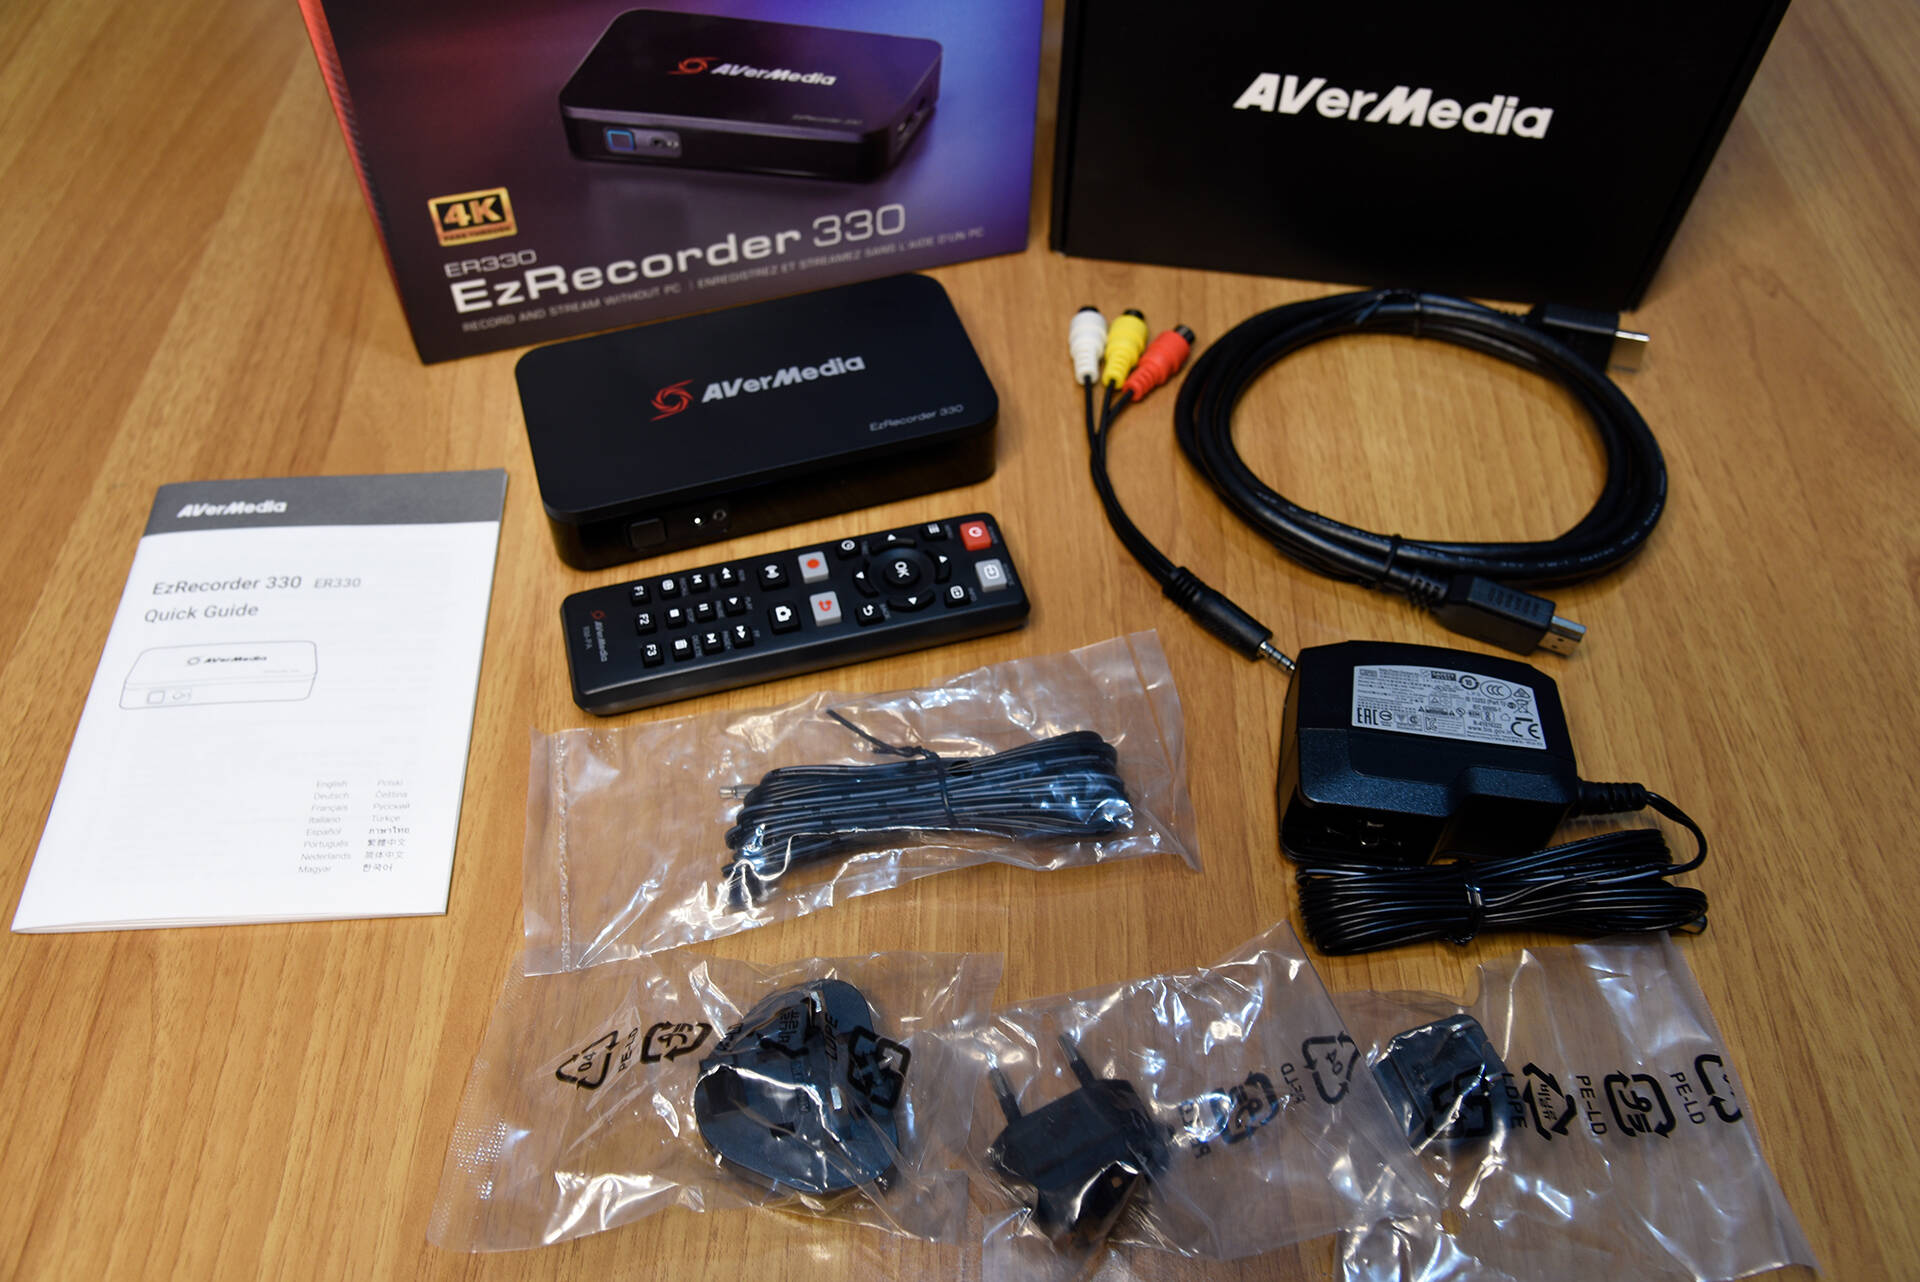 AVerMedia EzRecorder 330